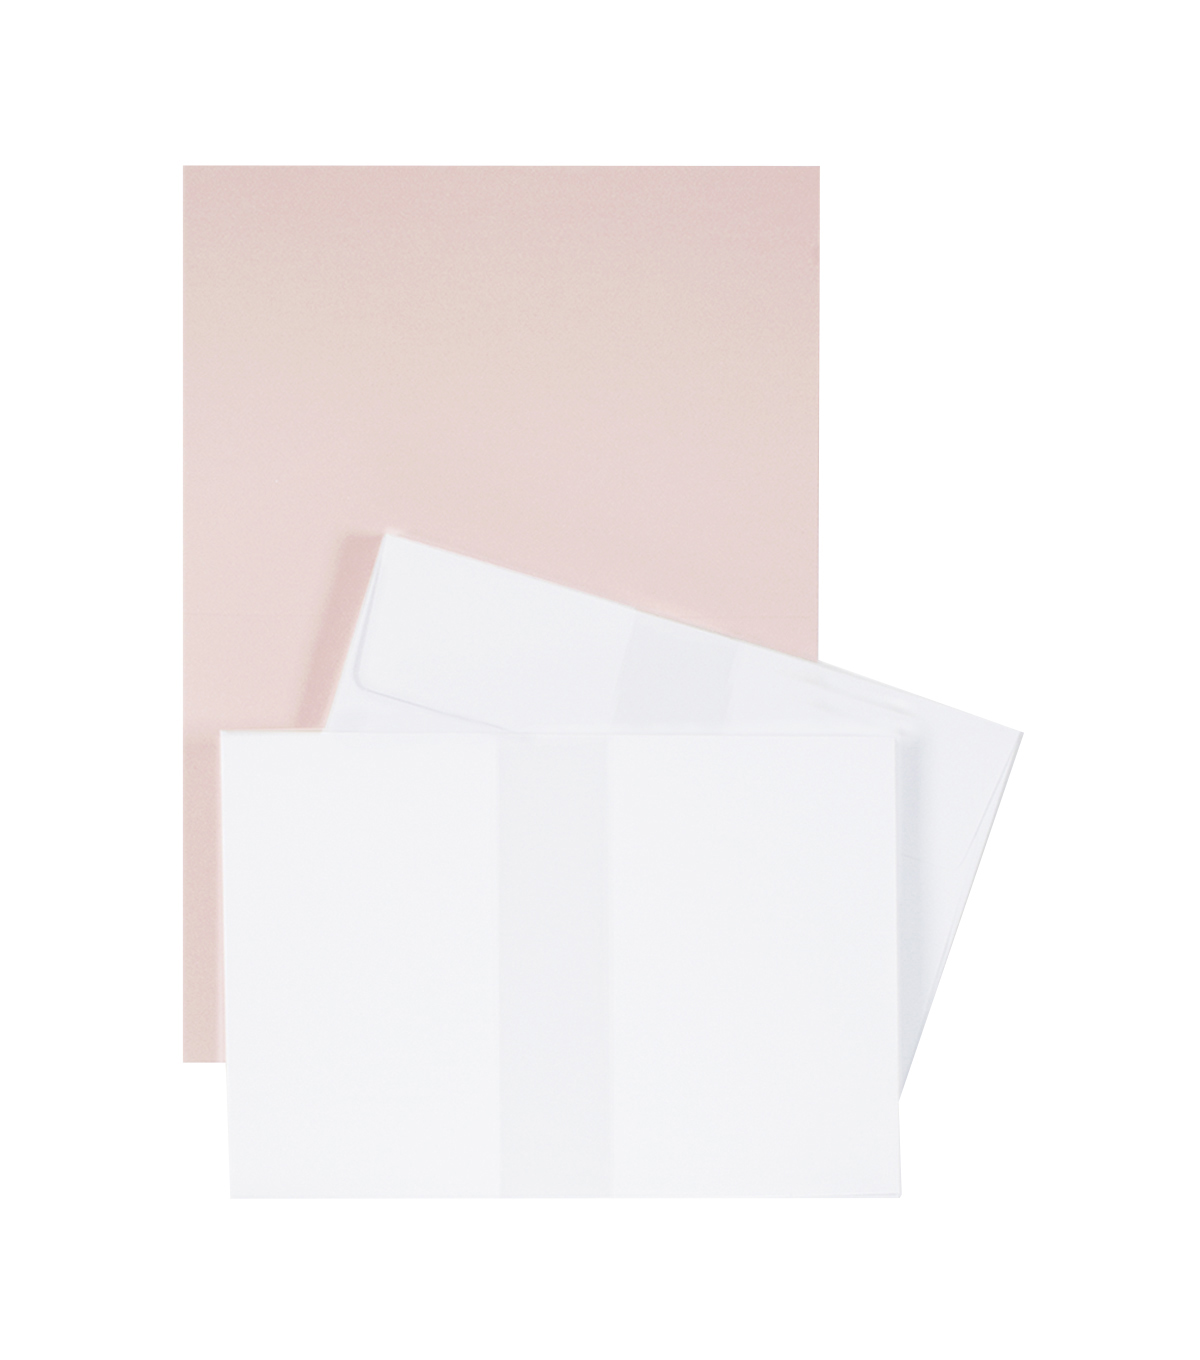 Park Lane A7 Cards & Envelopes-Blush